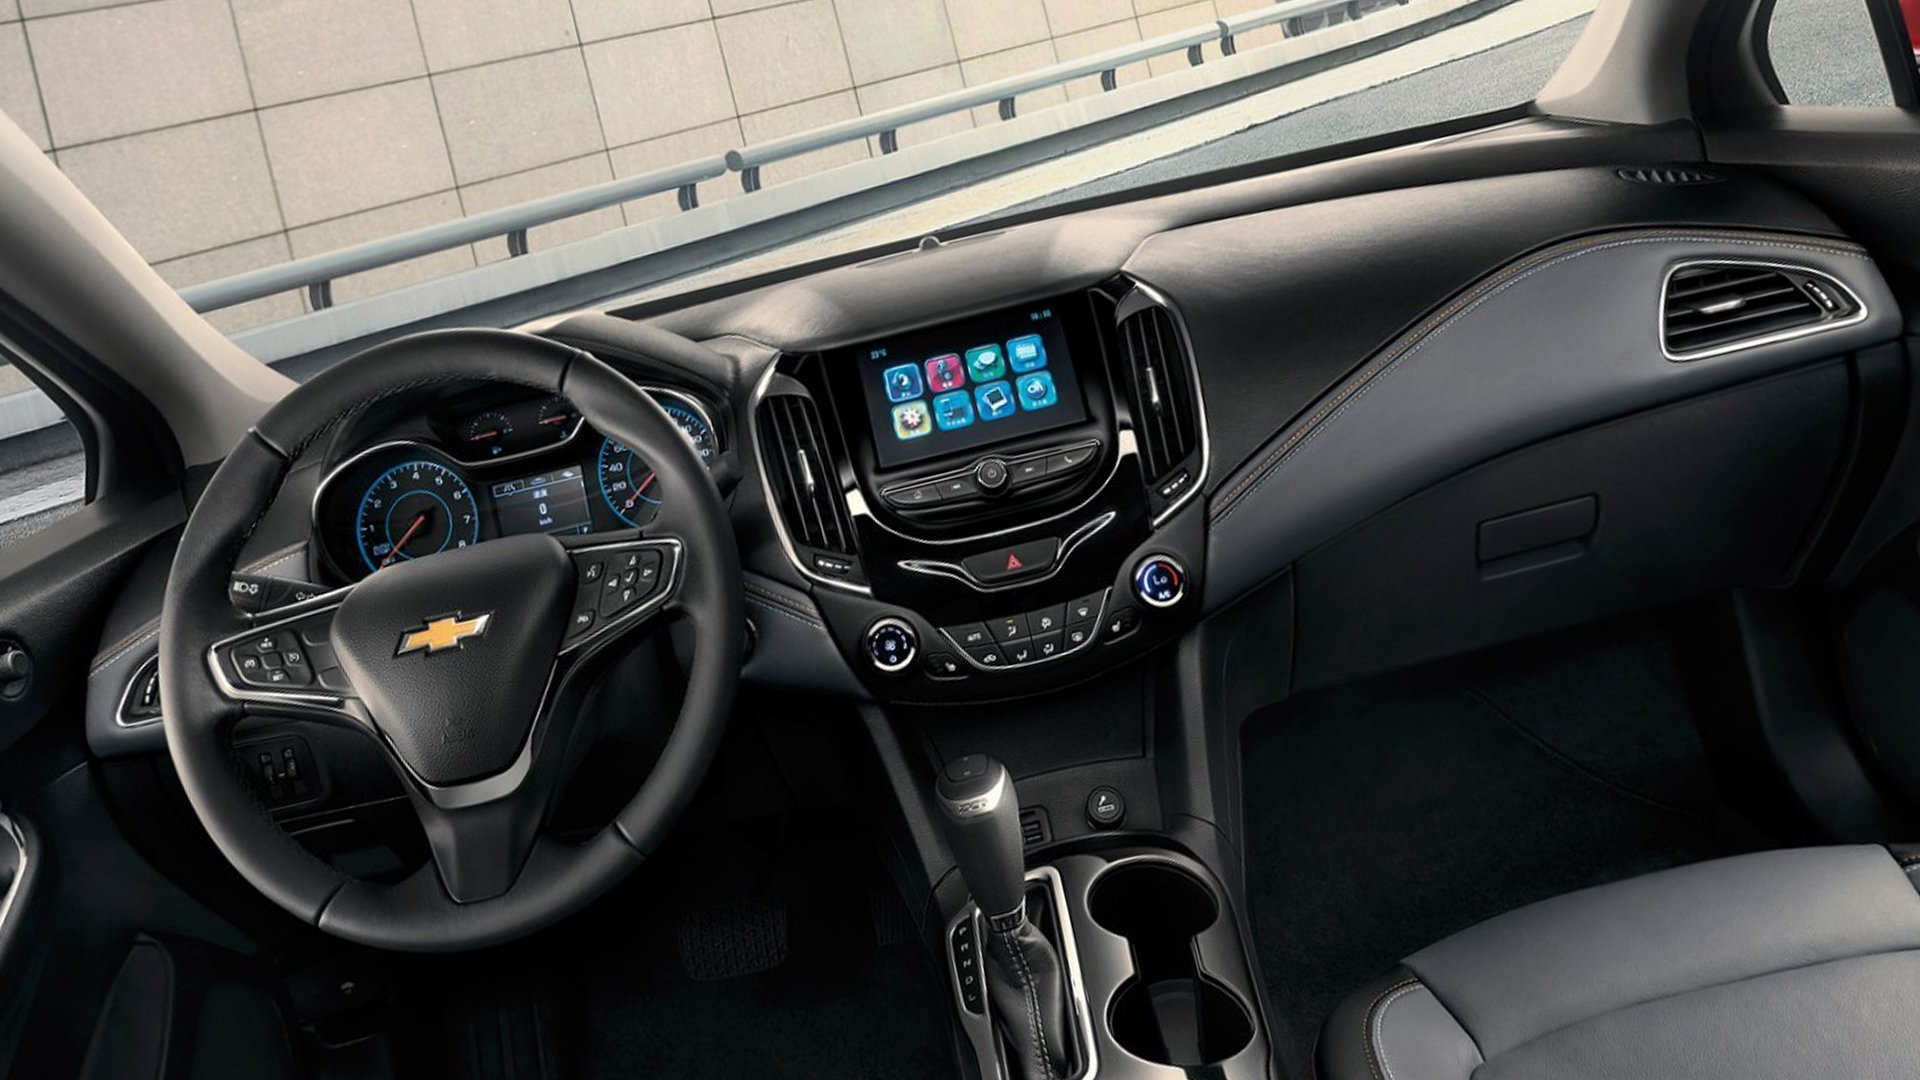 Interior Photos Chevrolet Cruze Full HD